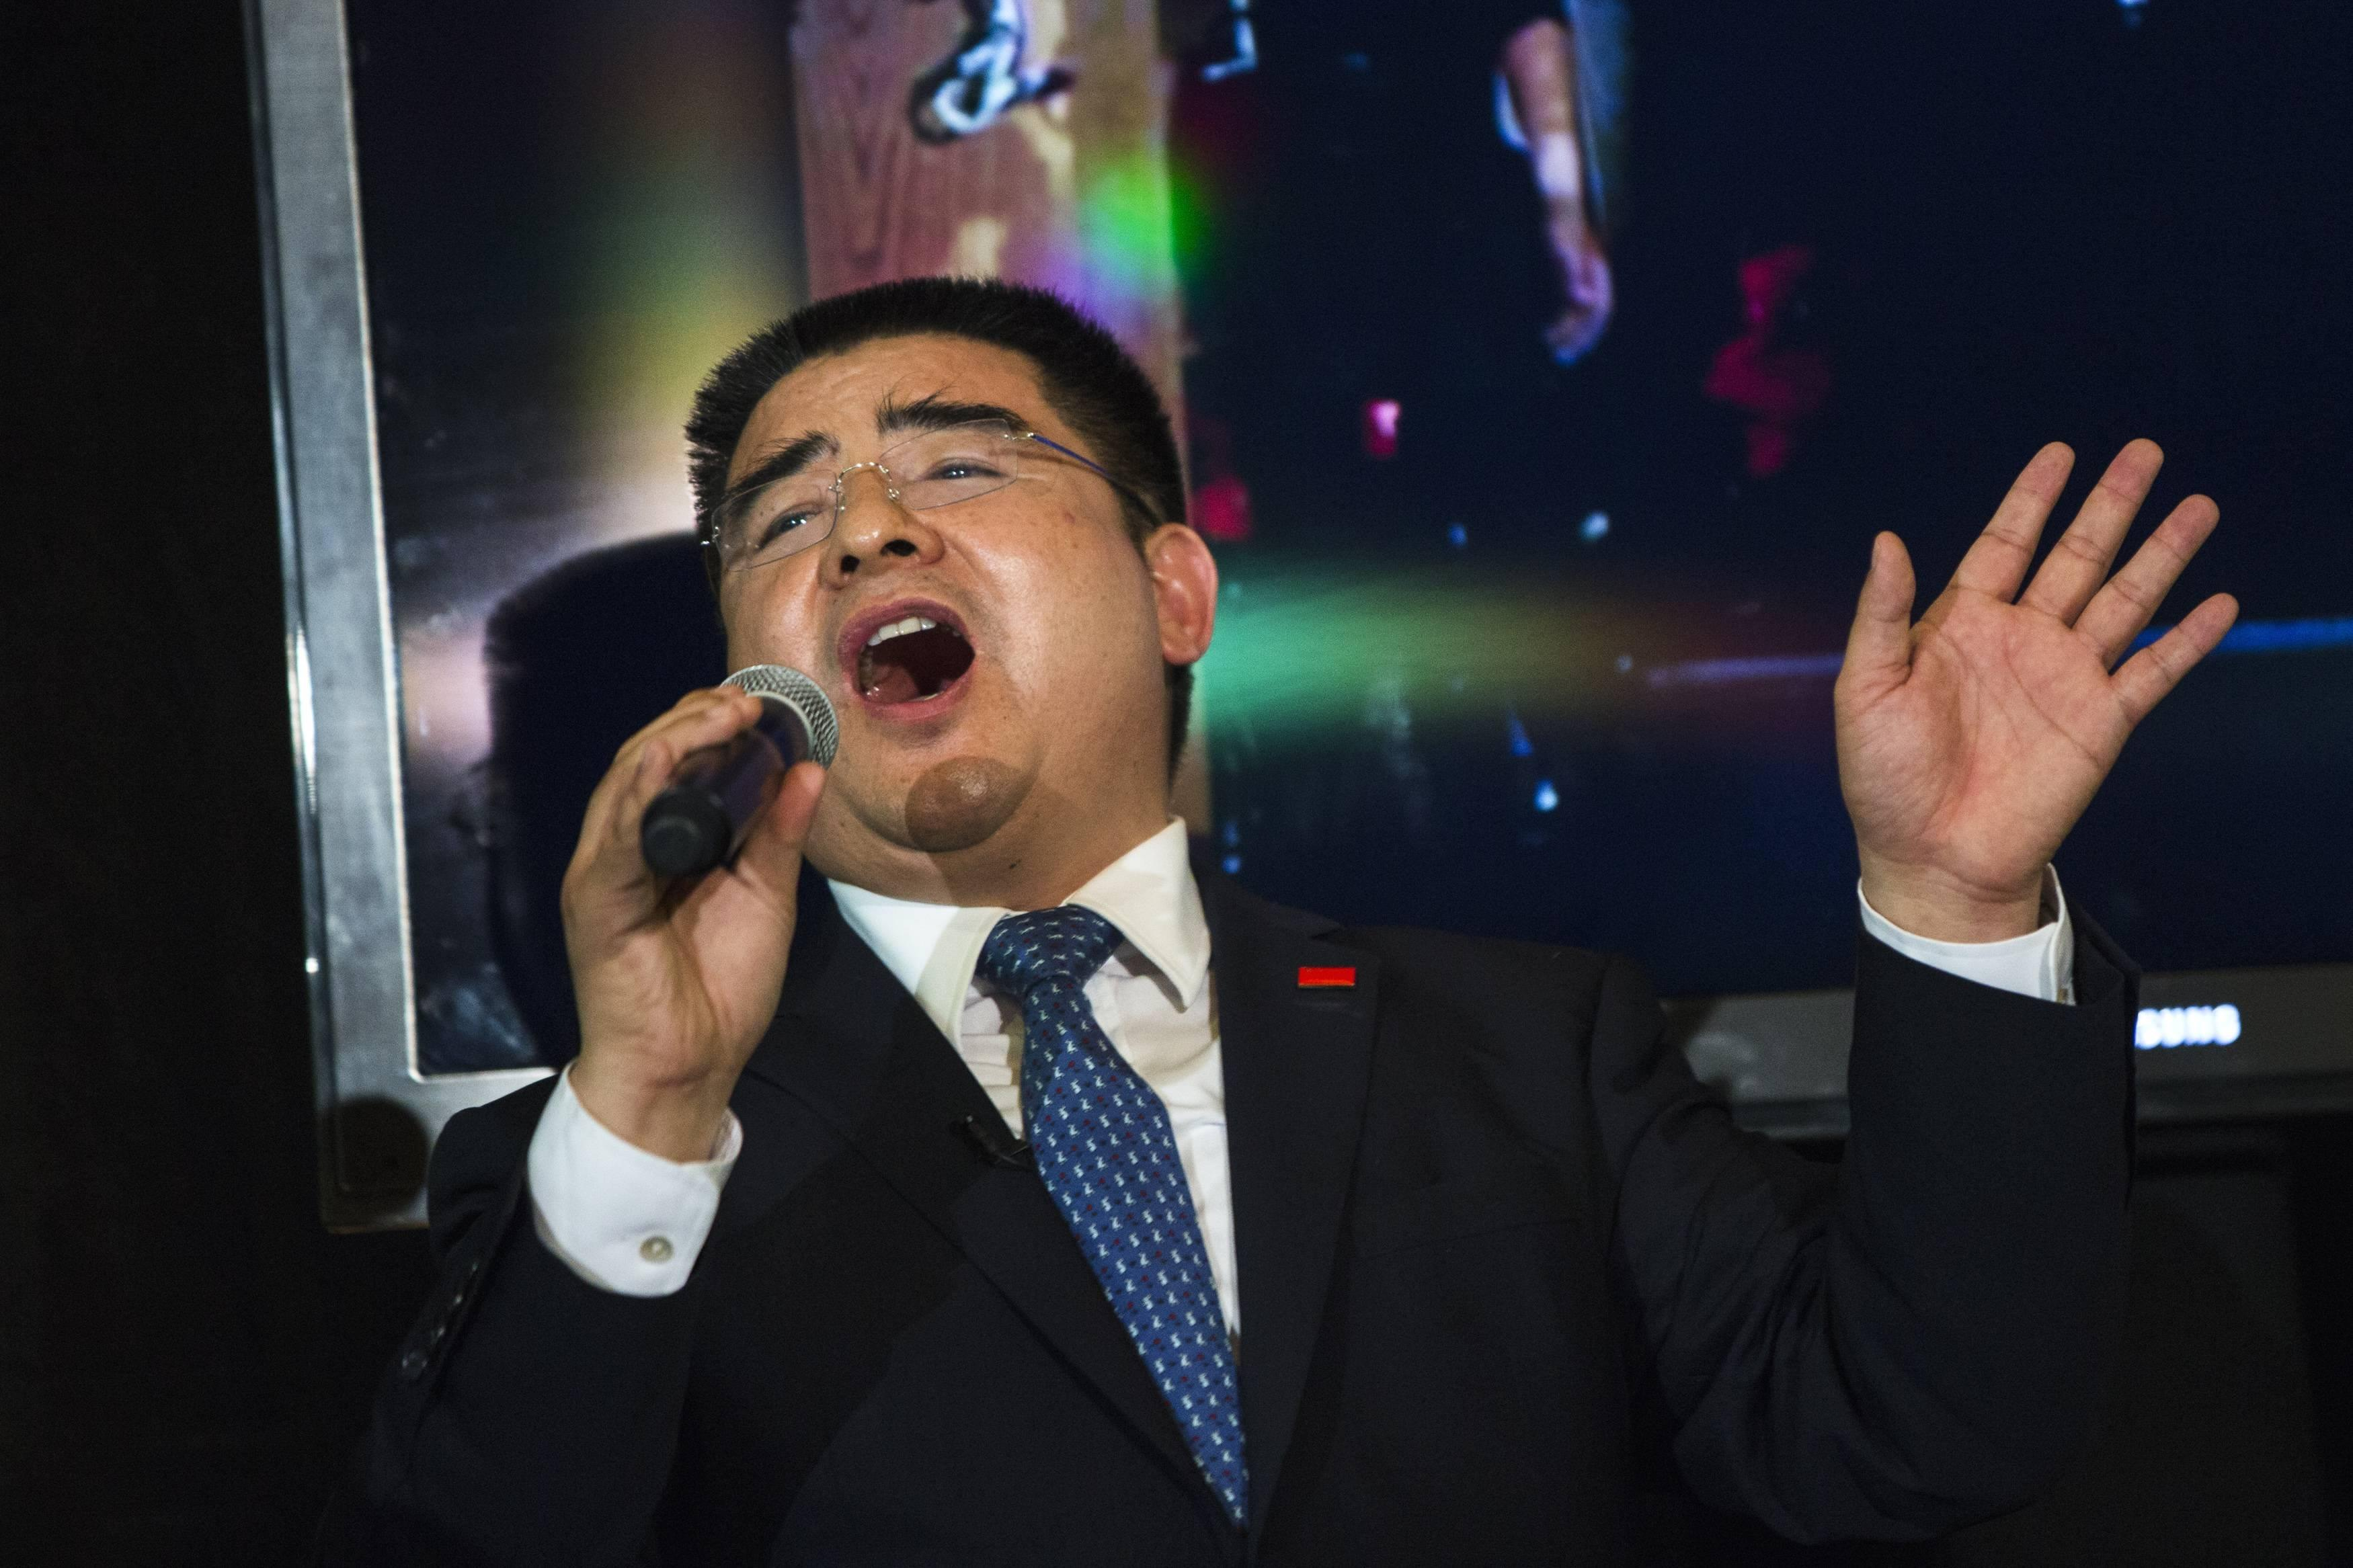 Image: Chinese millionaire Chen Guangbiao sings